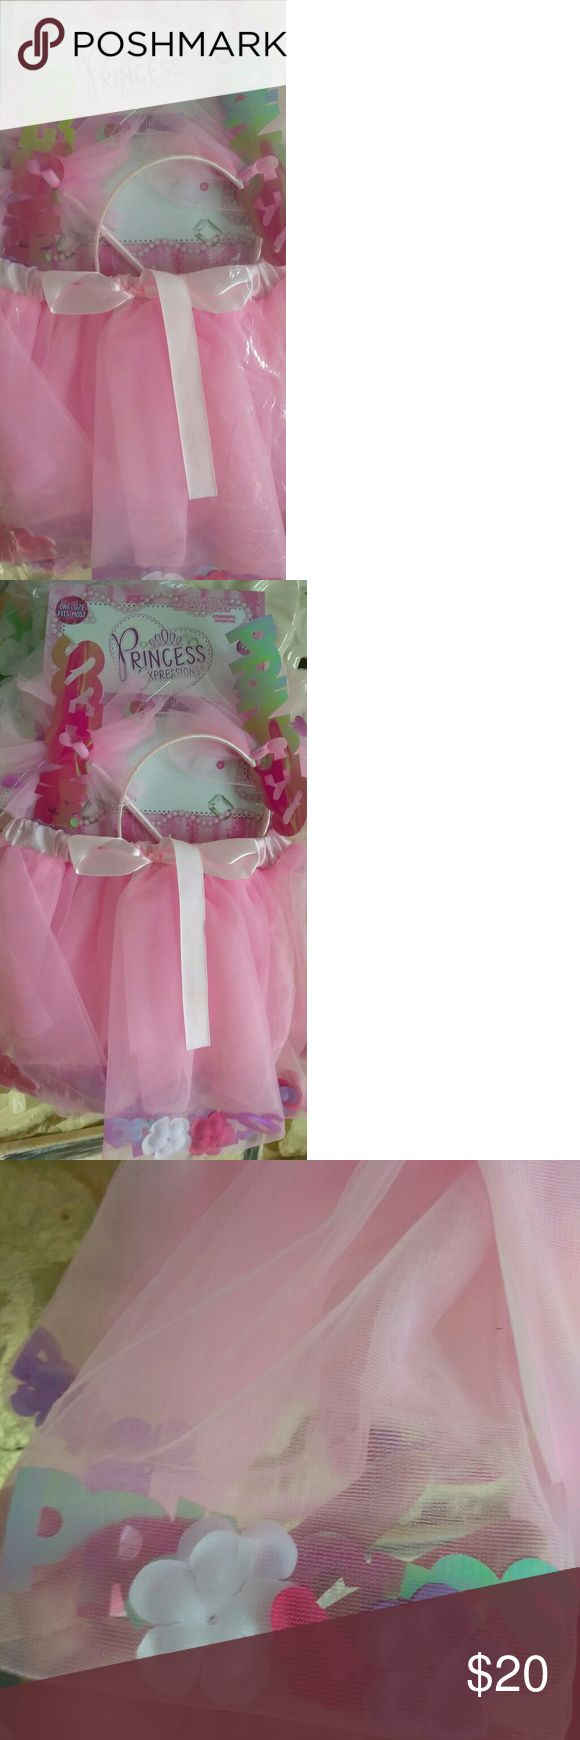 NWT Princess Dress Up Set NWT Princess Dress Up Set. Comes with Pink Tutu with flowers & princess confetti inside, Pink Princess Wand and Pink Princess head band. Brand New never been worn.   One size fits most. See picture with size description. Can be used as a Halloween Costume.   Tutu Material: 100% Polyester Princess Expressions Costumes Dance